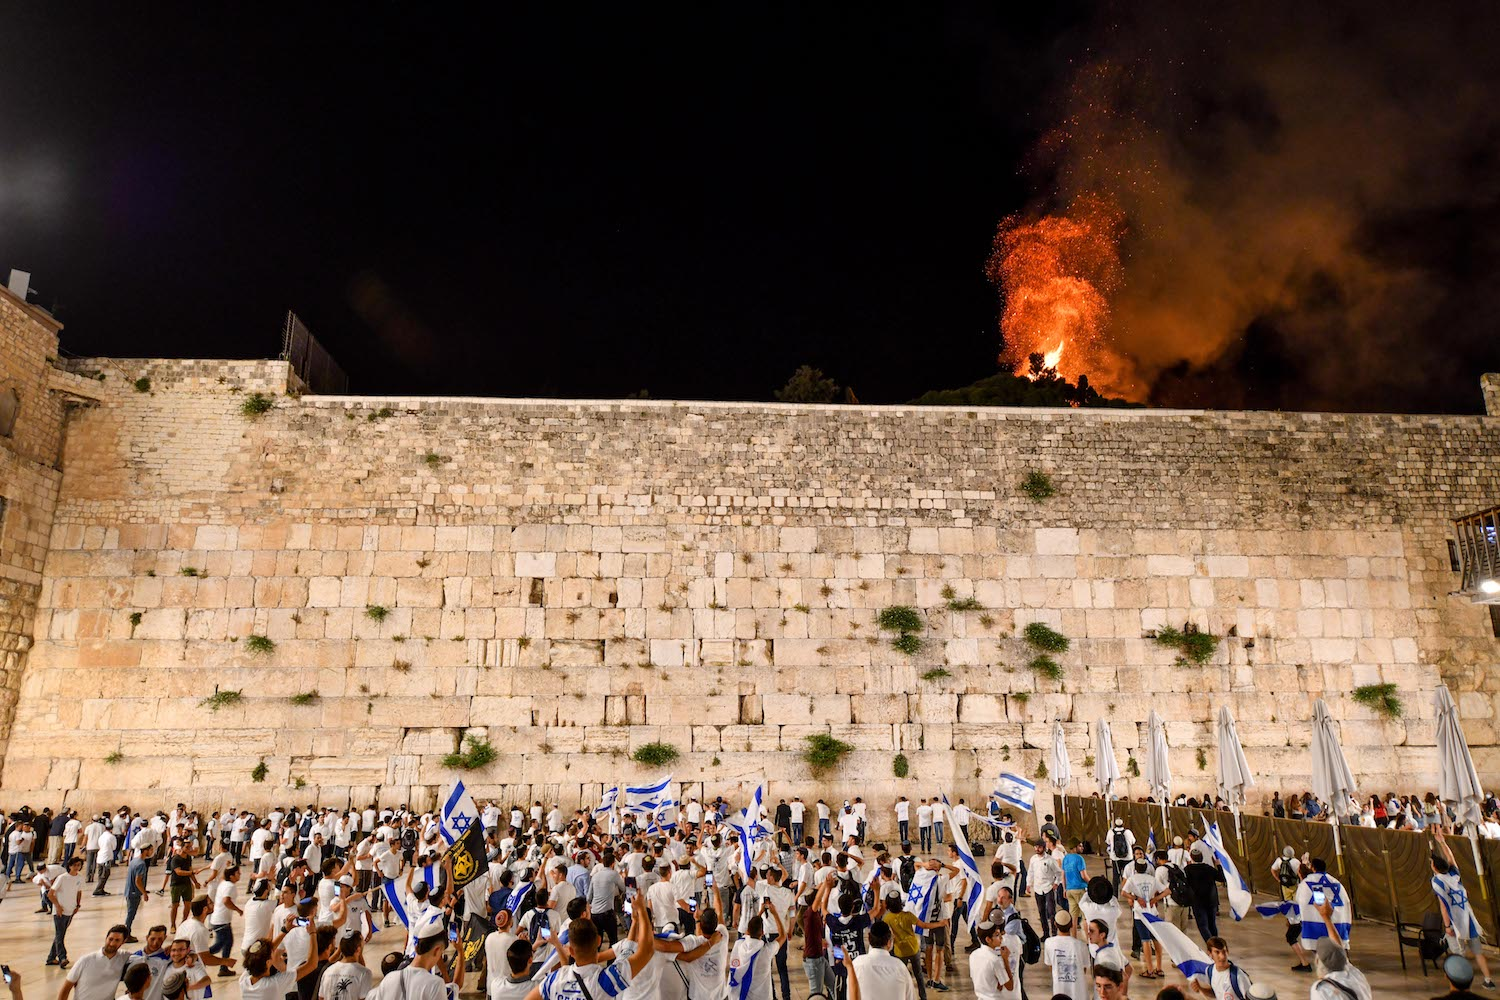 Israelis celebrate Jerusalem Day at the Western Wall as a blaze is seen from the al-Aqsa Compound, Jerusalem, May 10, 2021. (Mendy Hechtman/Flash90)